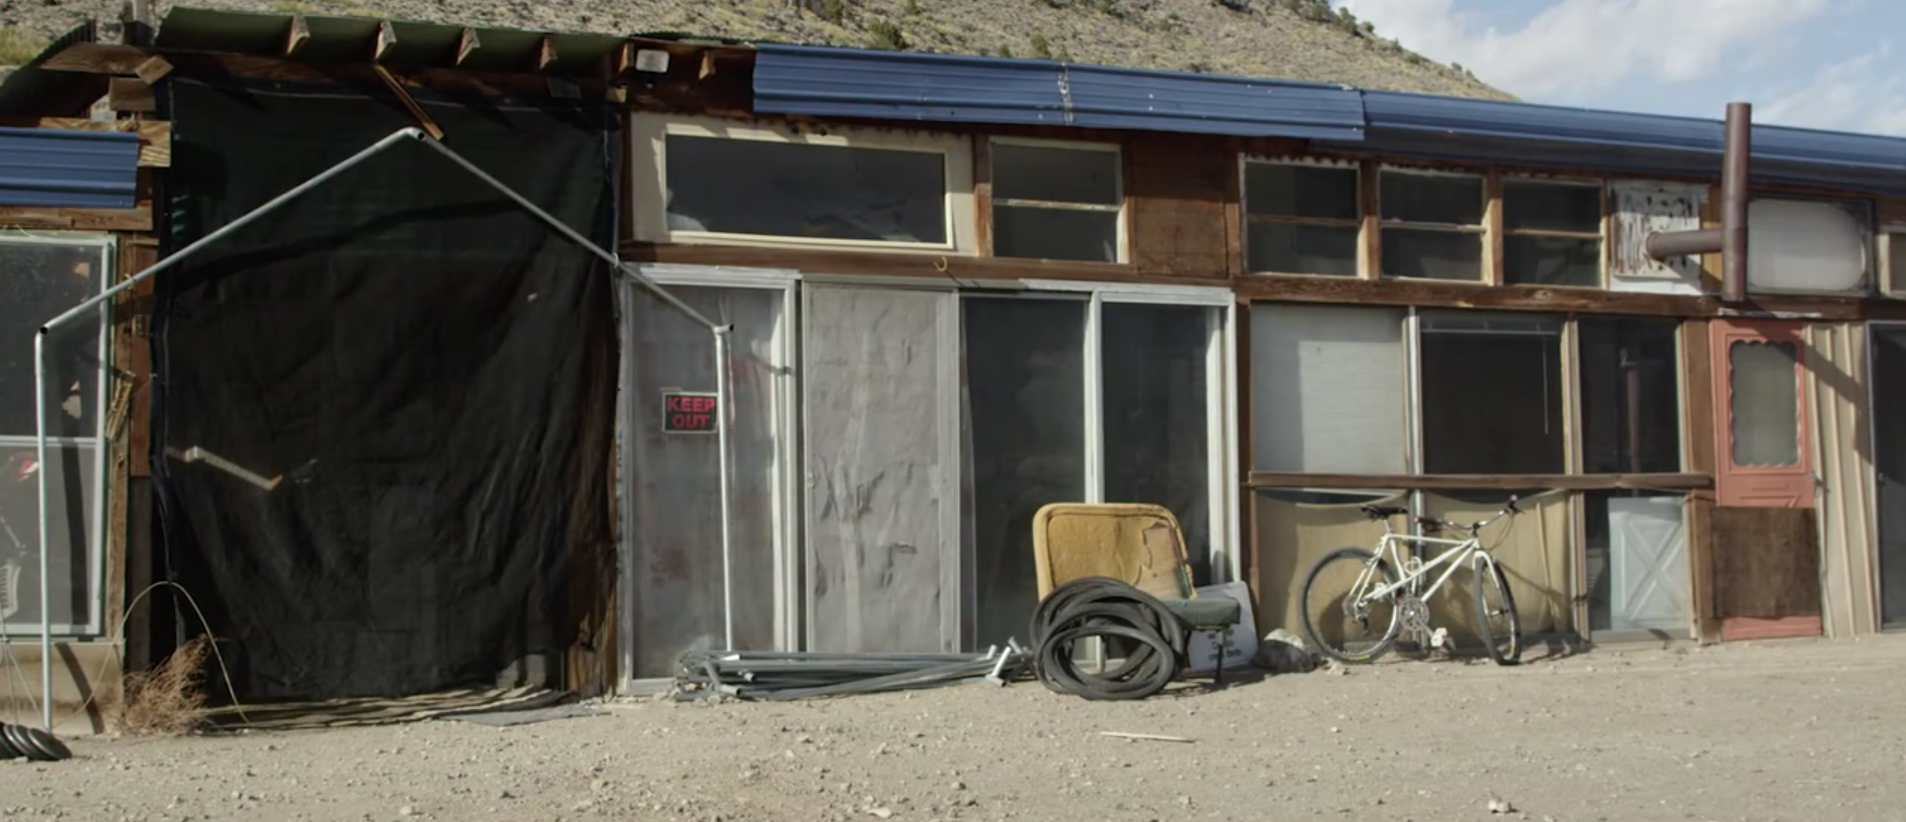 Mike Rust's off-the-grid home in Saguache County (looking Northwest)